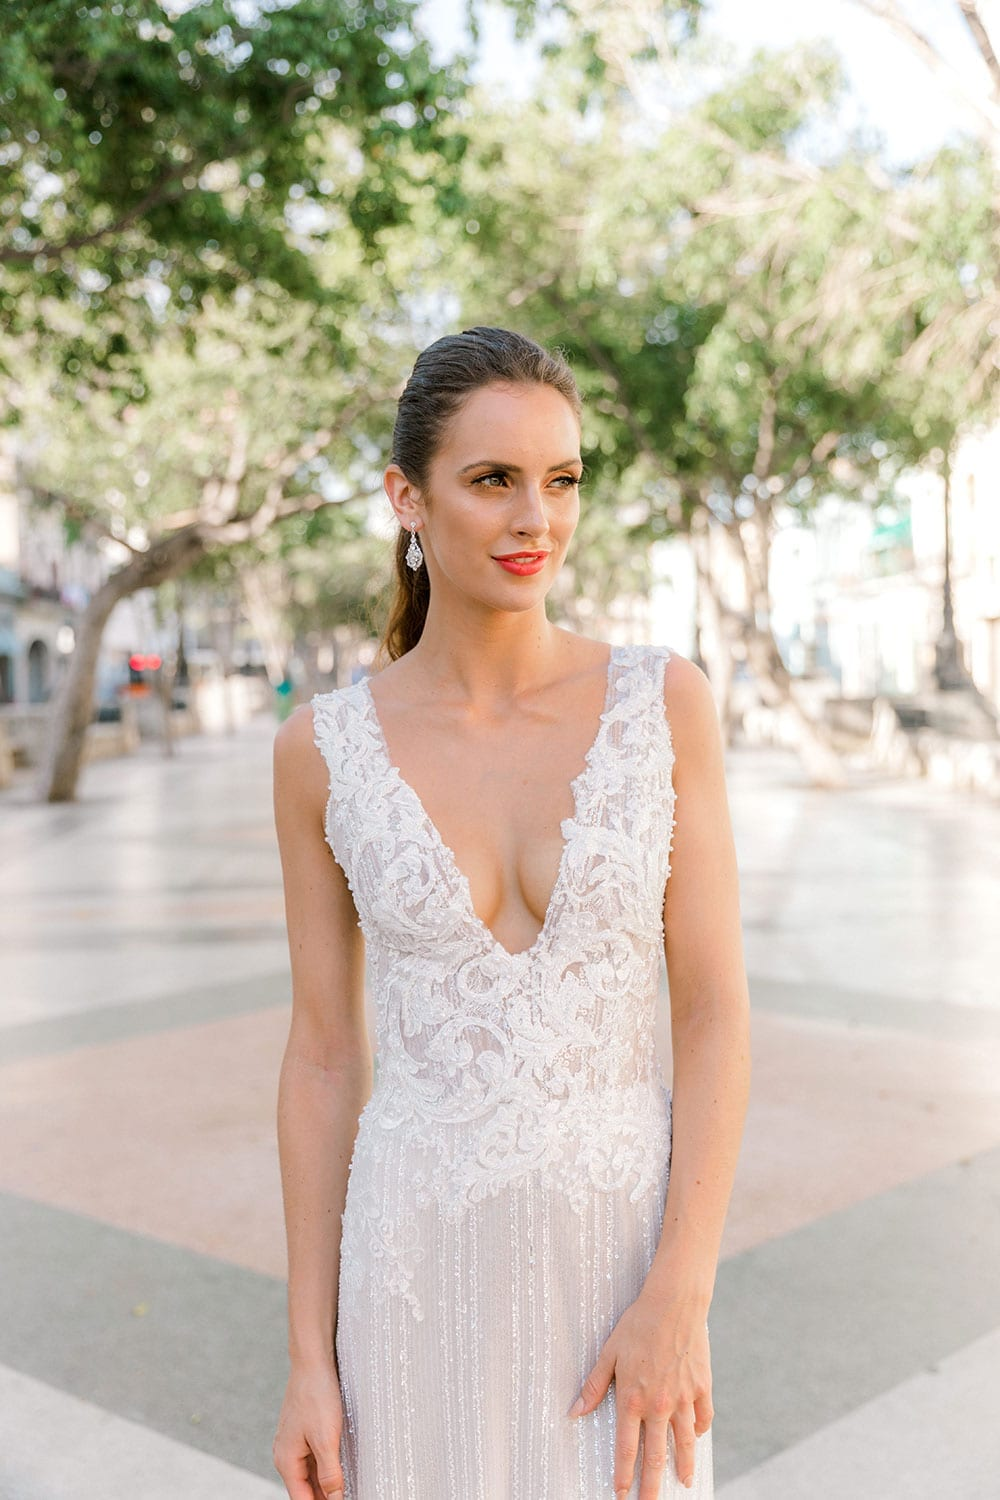 Model wearing Vinka Design Natalia Wedding Dress, a V-Neck Beaded Lace Wedding Gown in a Cuban plaza